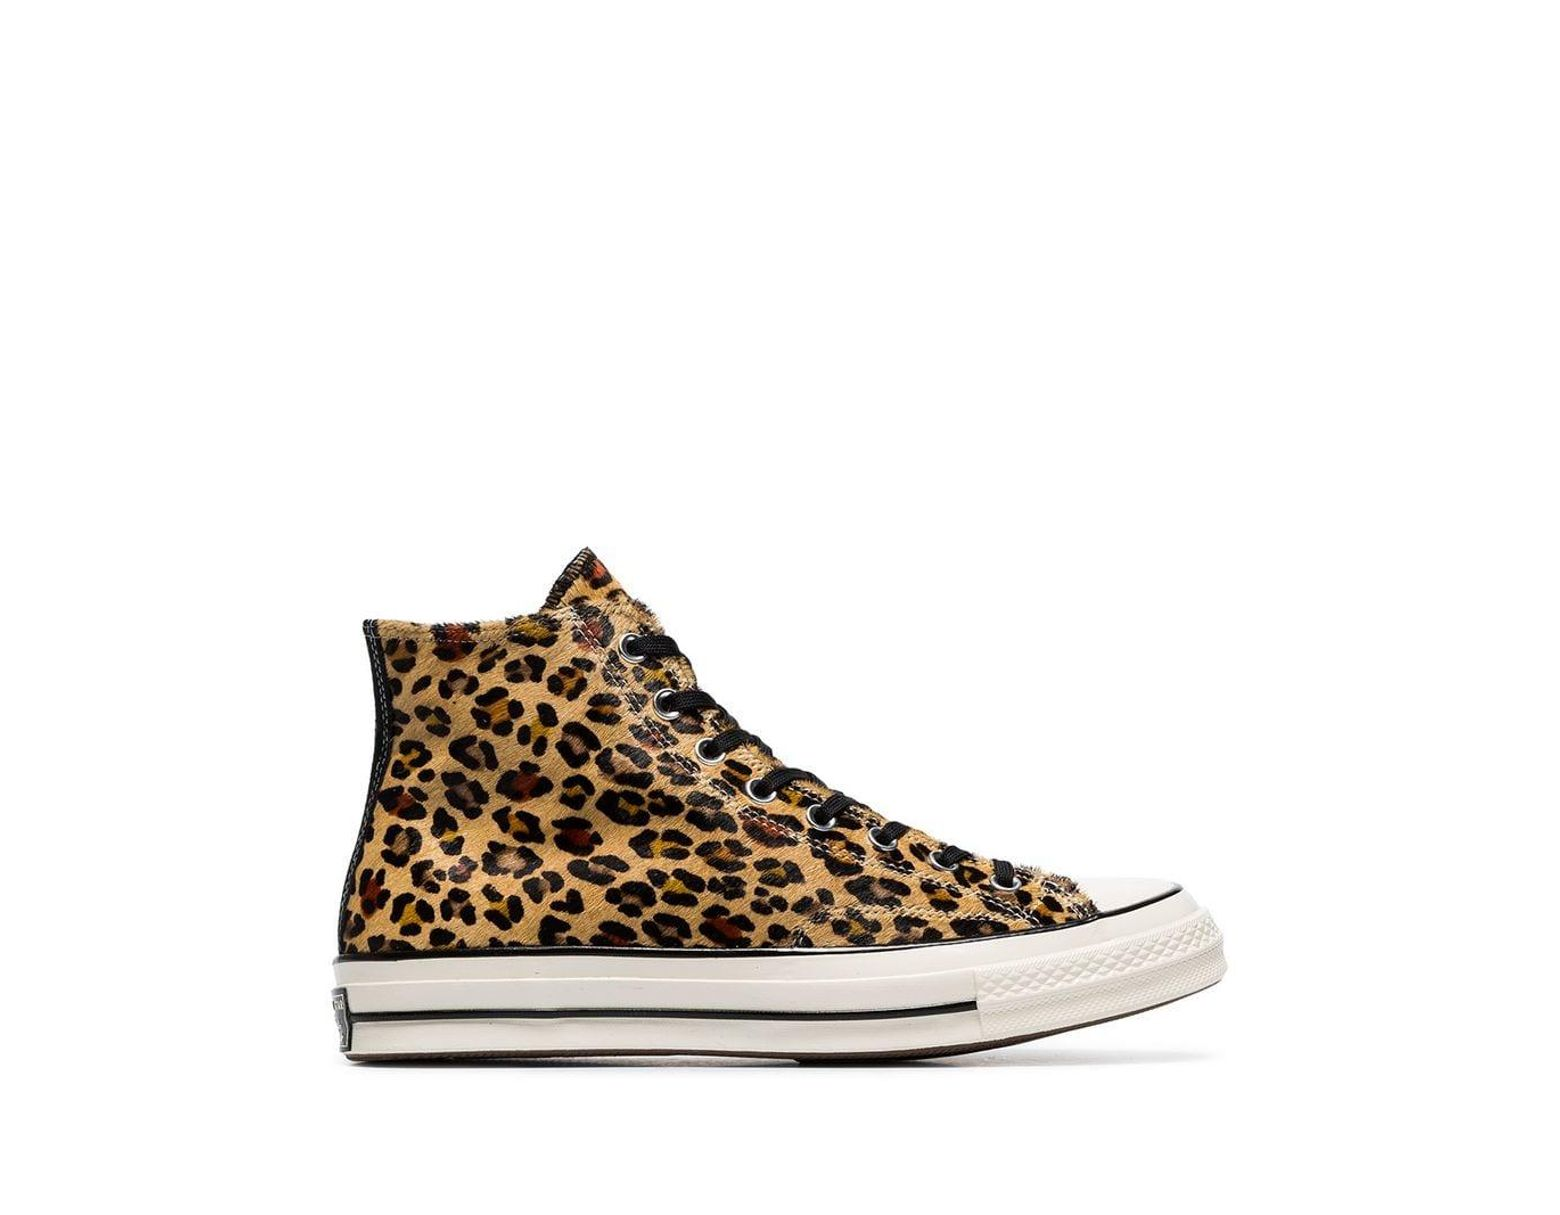 c646ed2bac07 Converse Leopard Print Chuck Taylor 70's High-top Sneakers for Men - Lyst